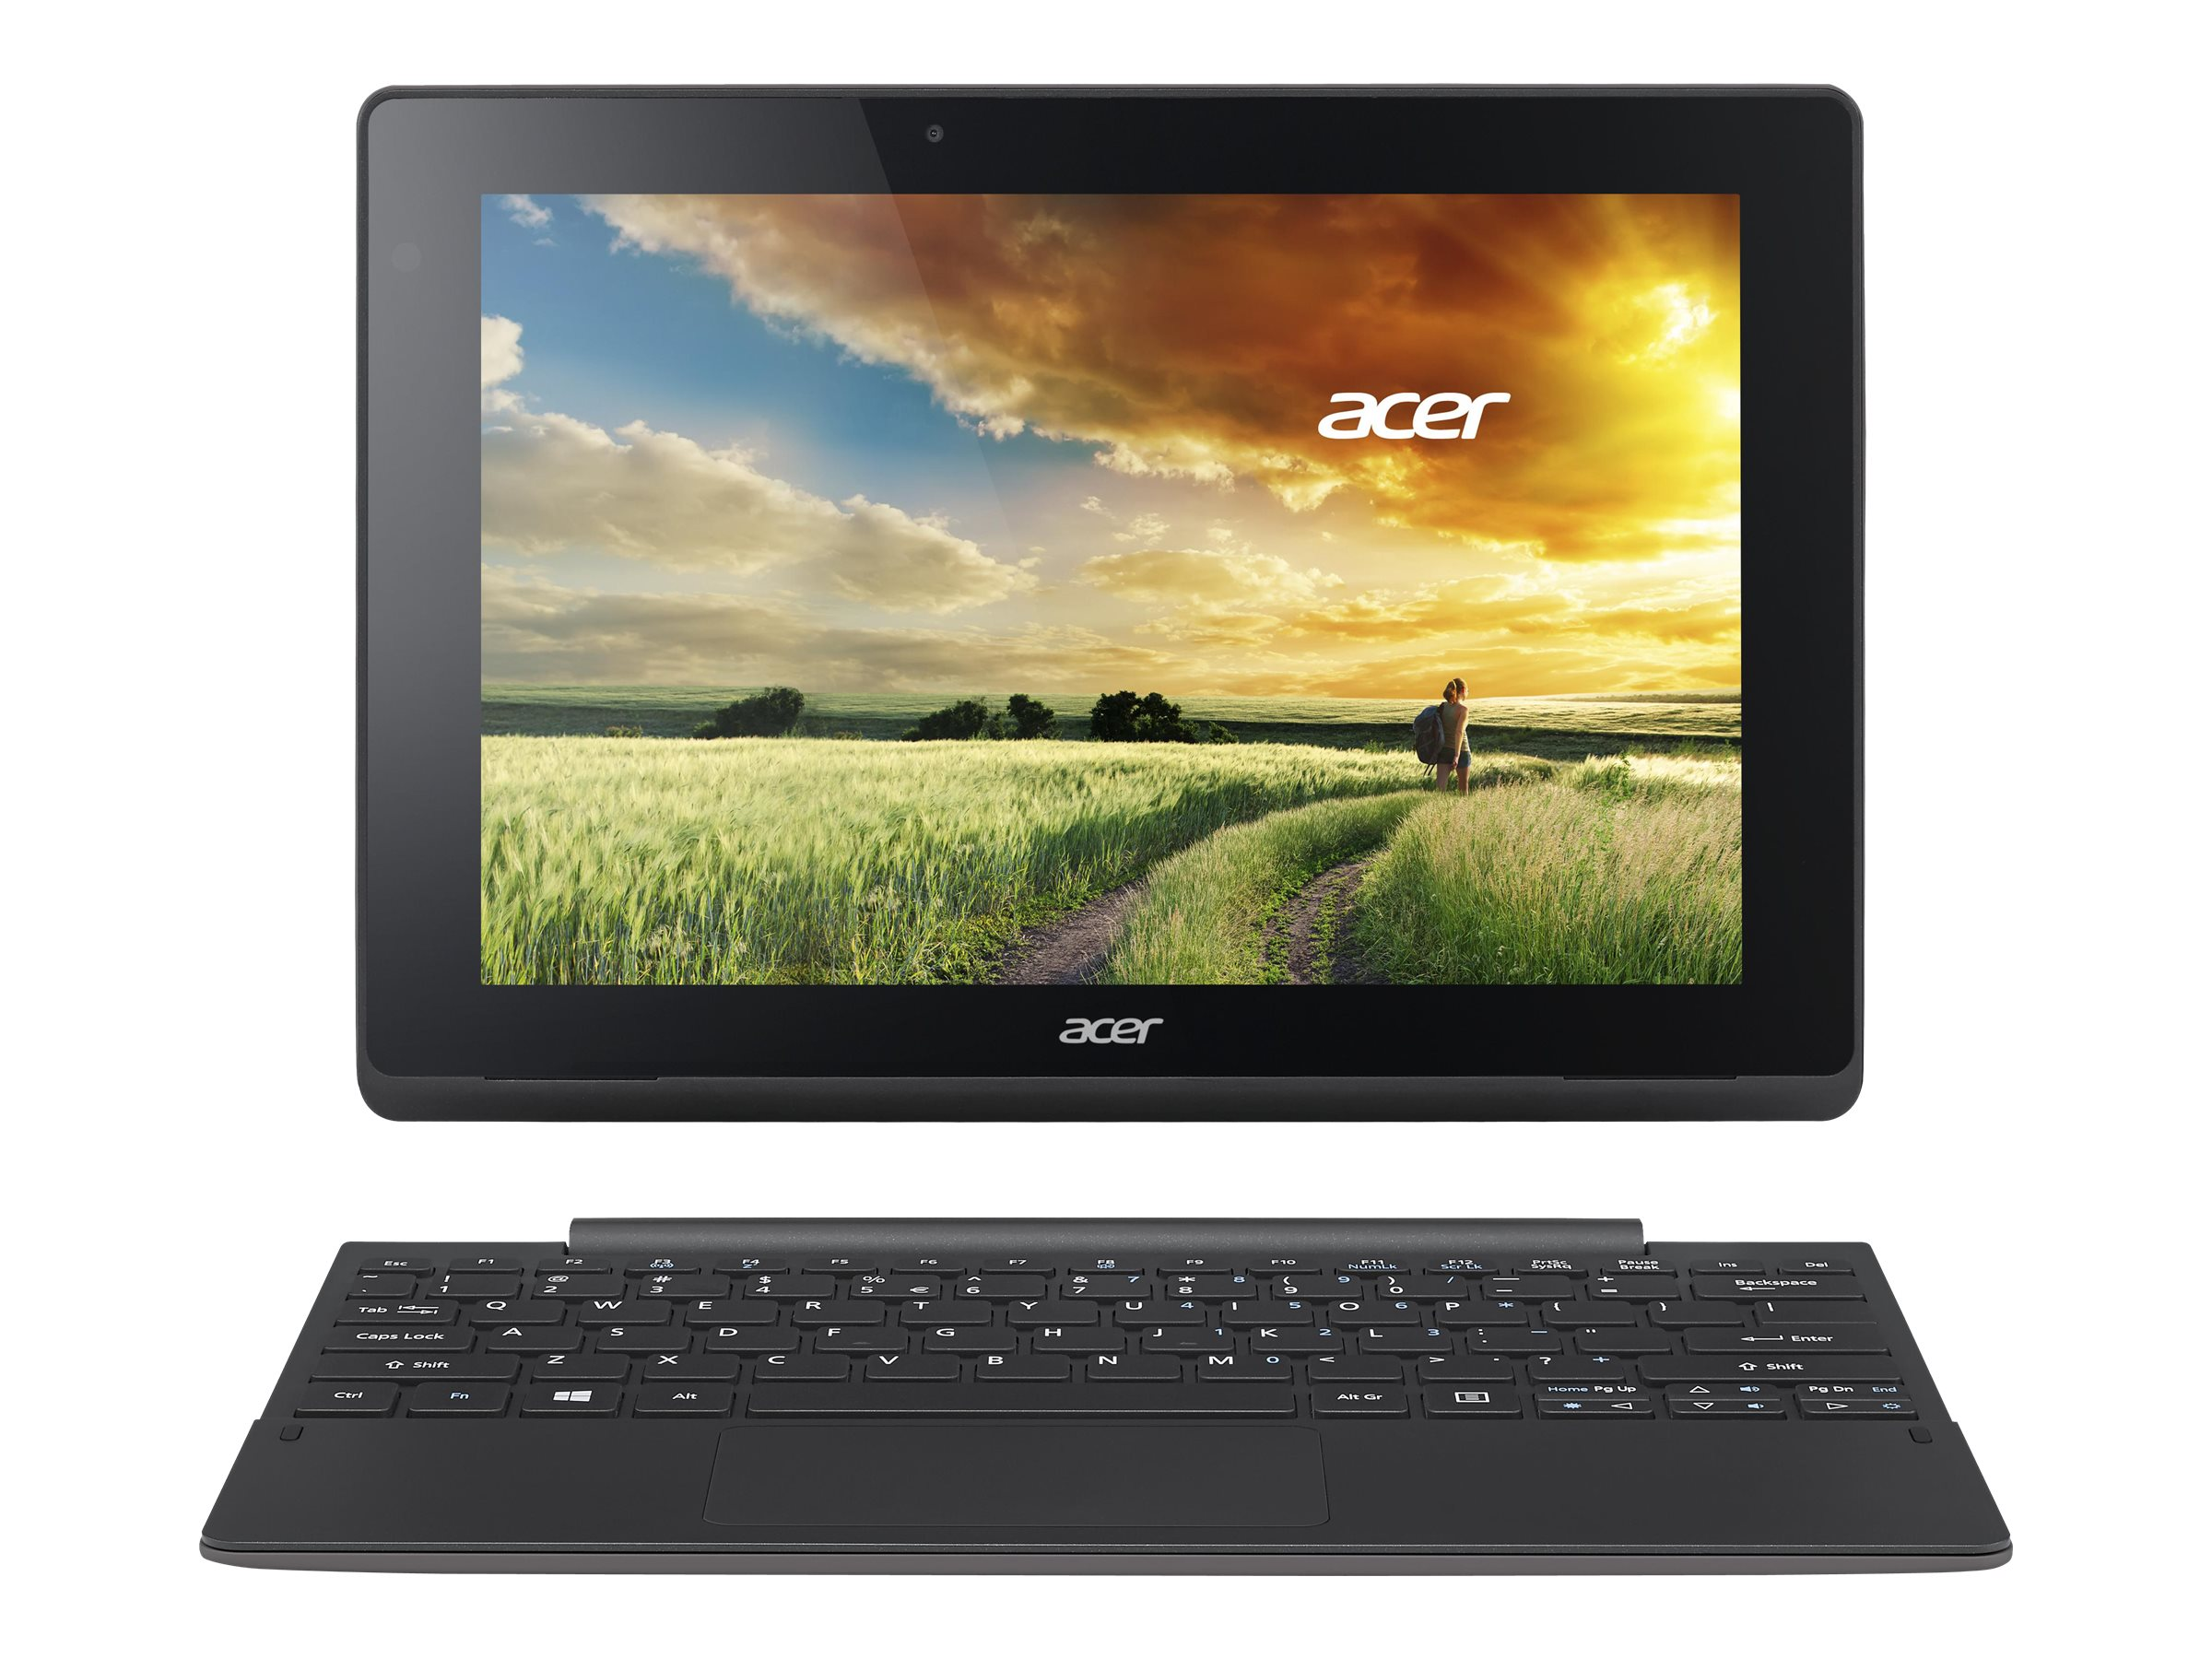 Acer NT.G8VAA.004 Image 2